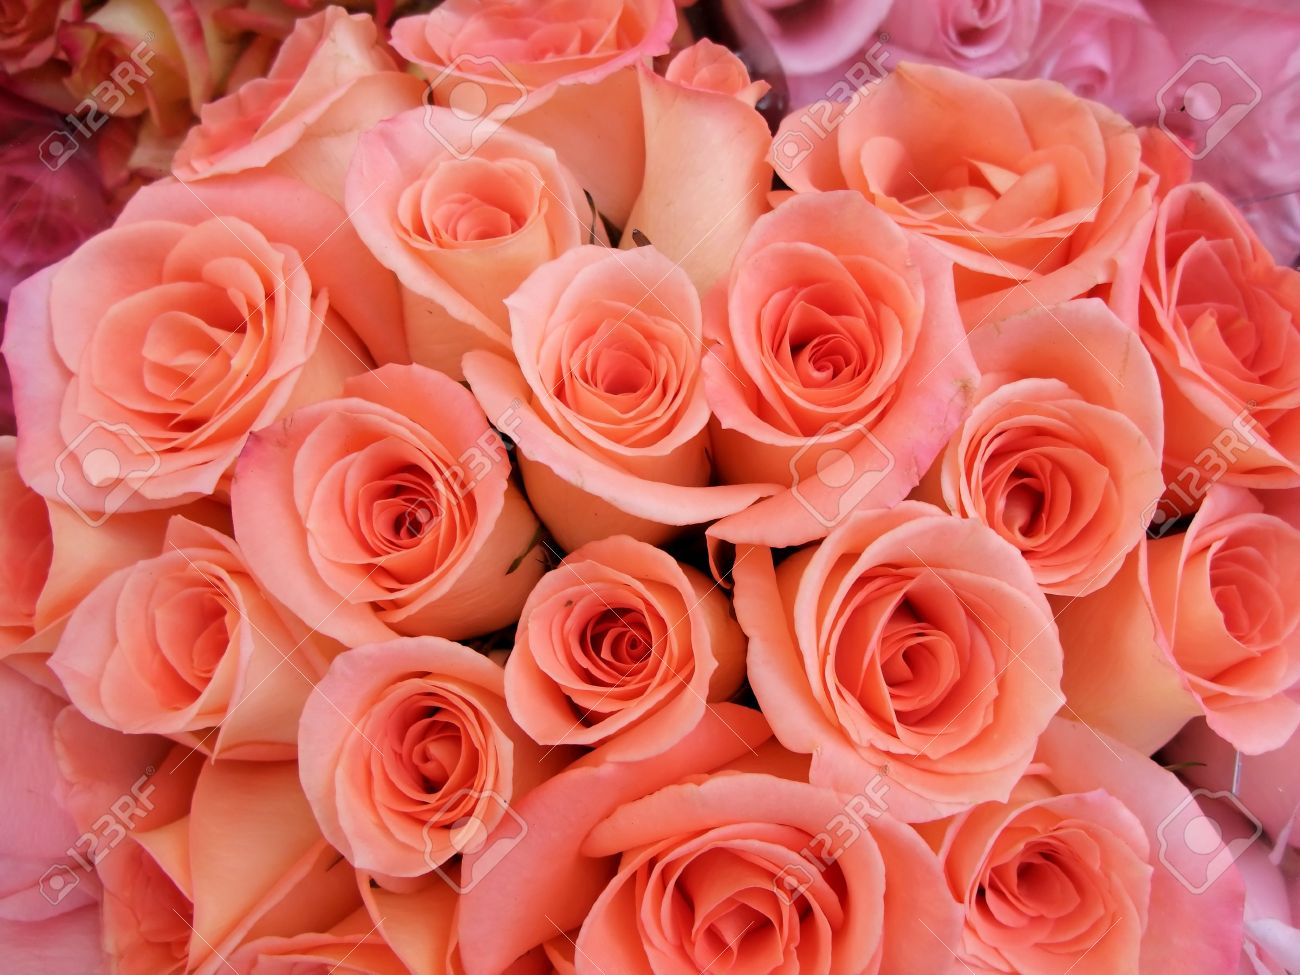 A Bouquet Of Peach Colored Roses Stock Photo, Picture And Royalty ...